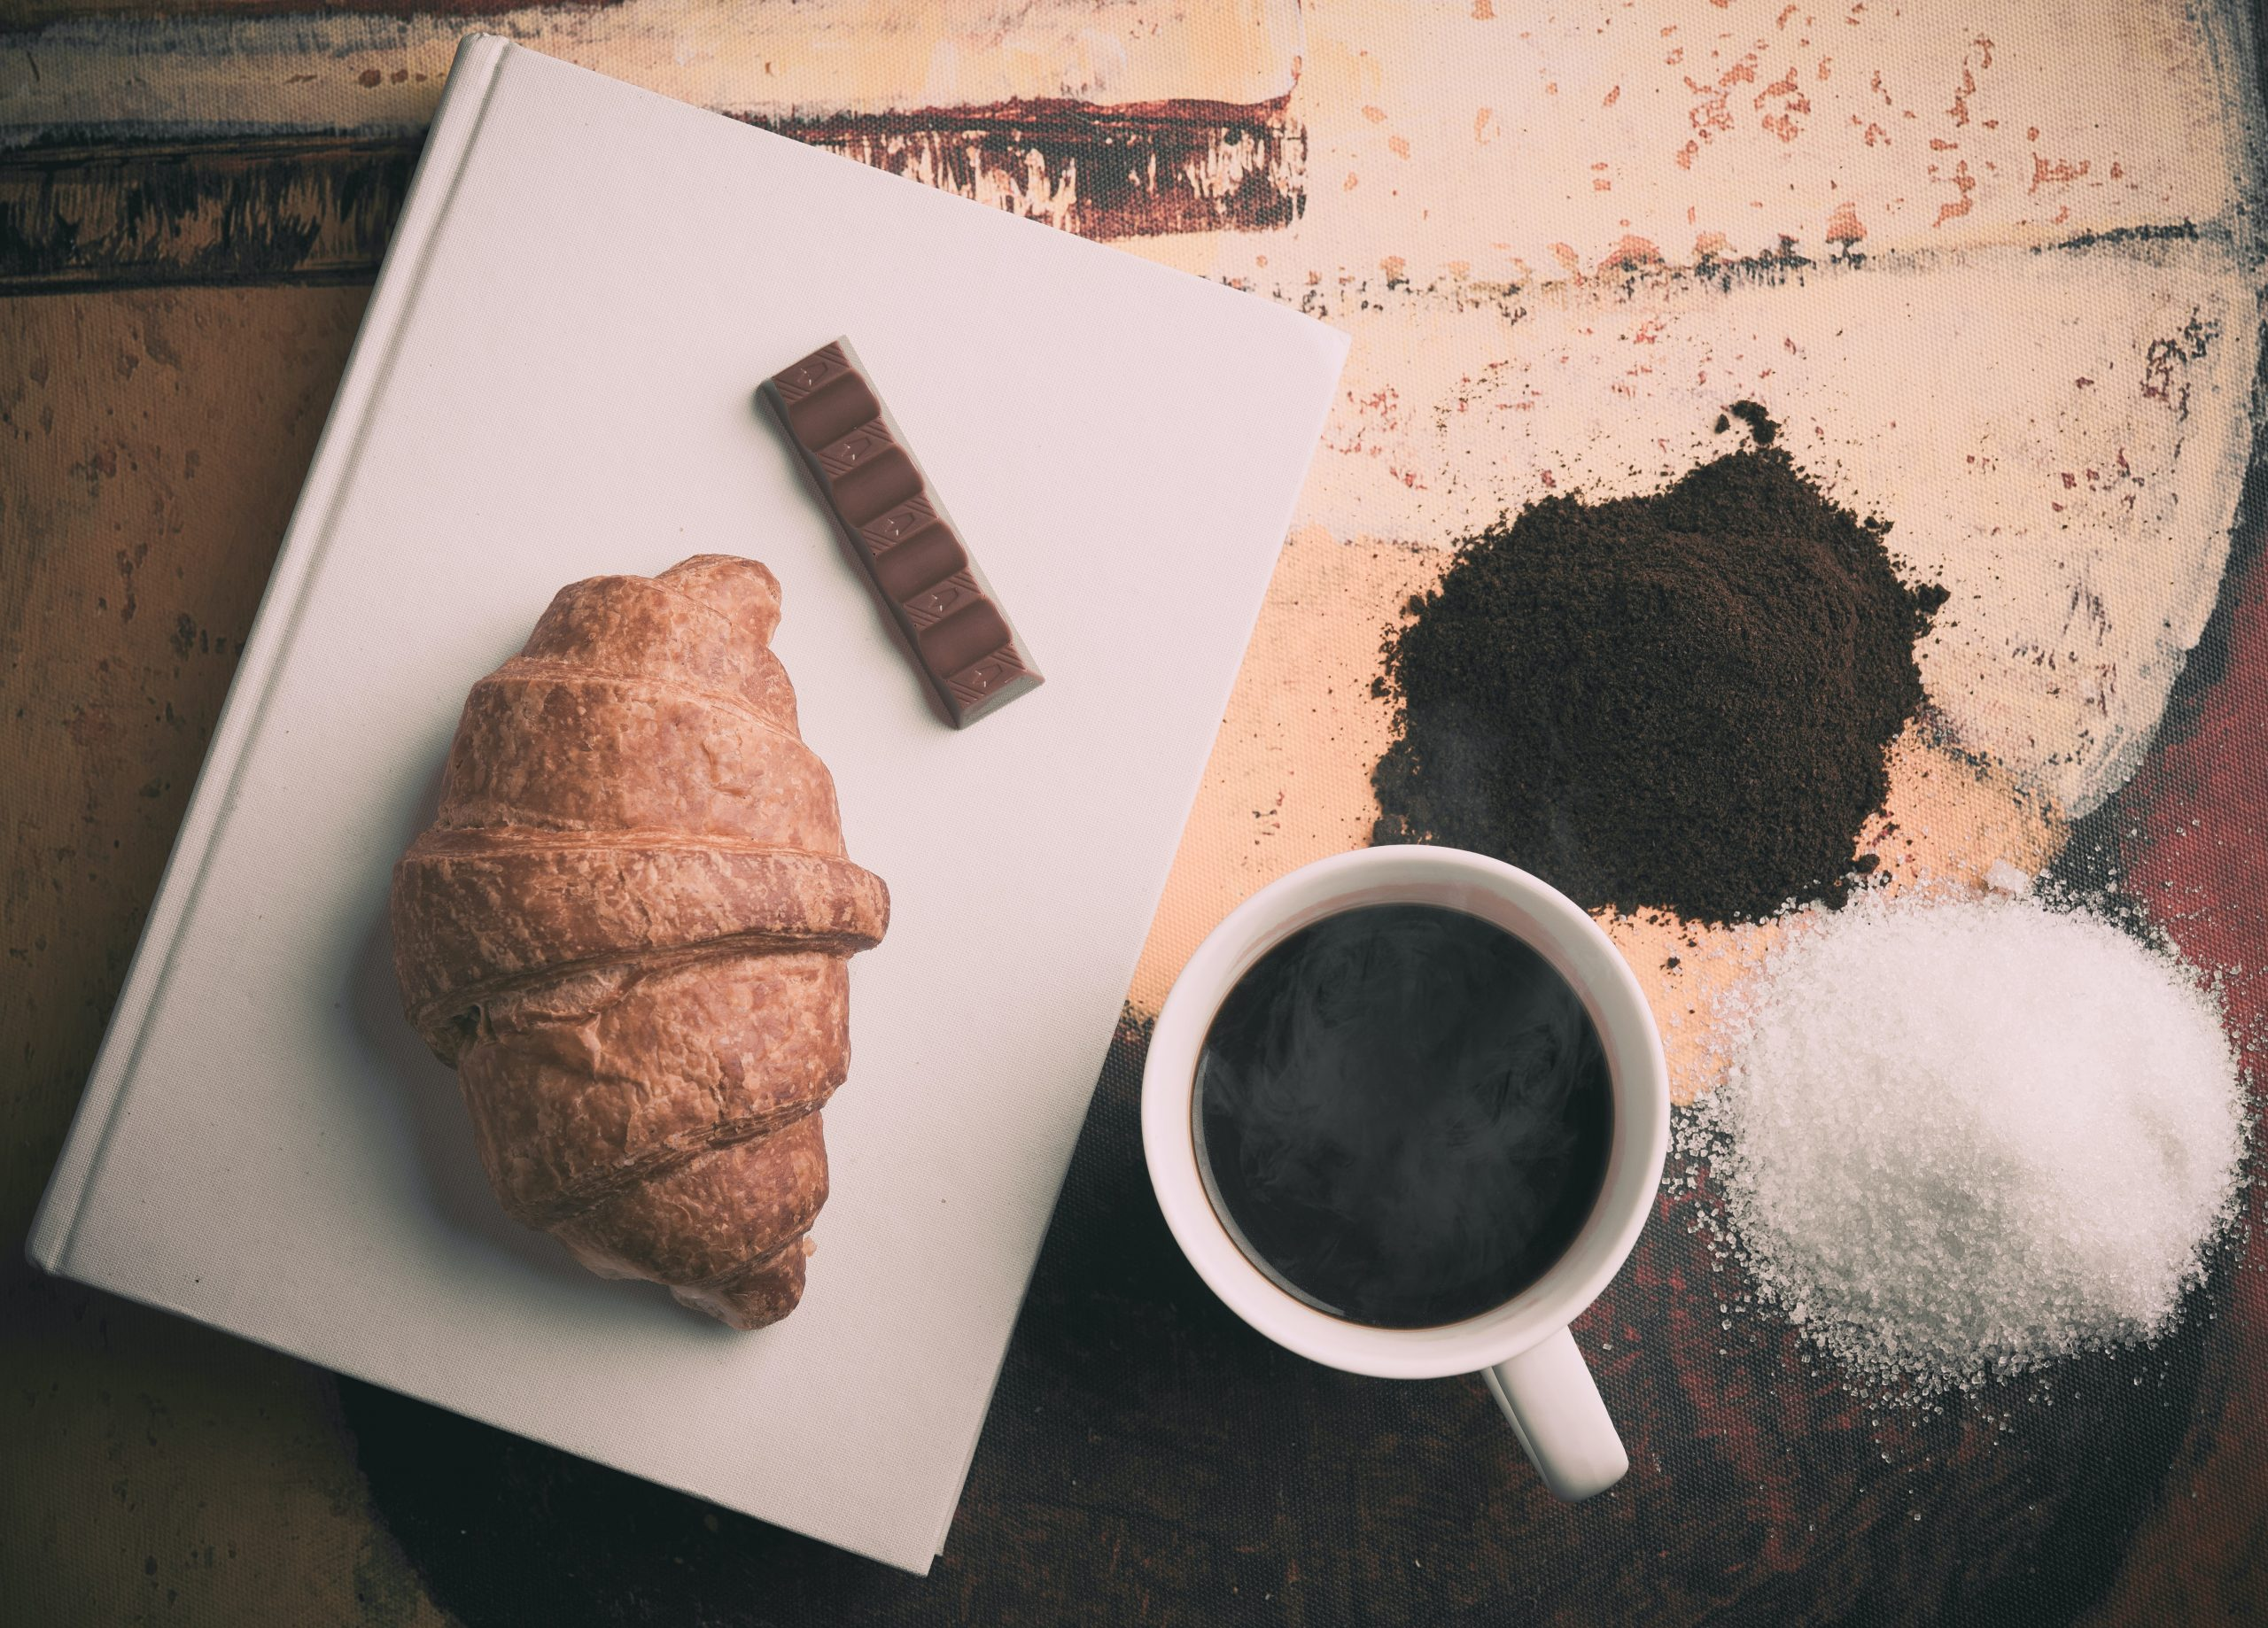 Black Coffee: Benefits, Nutrition, and More